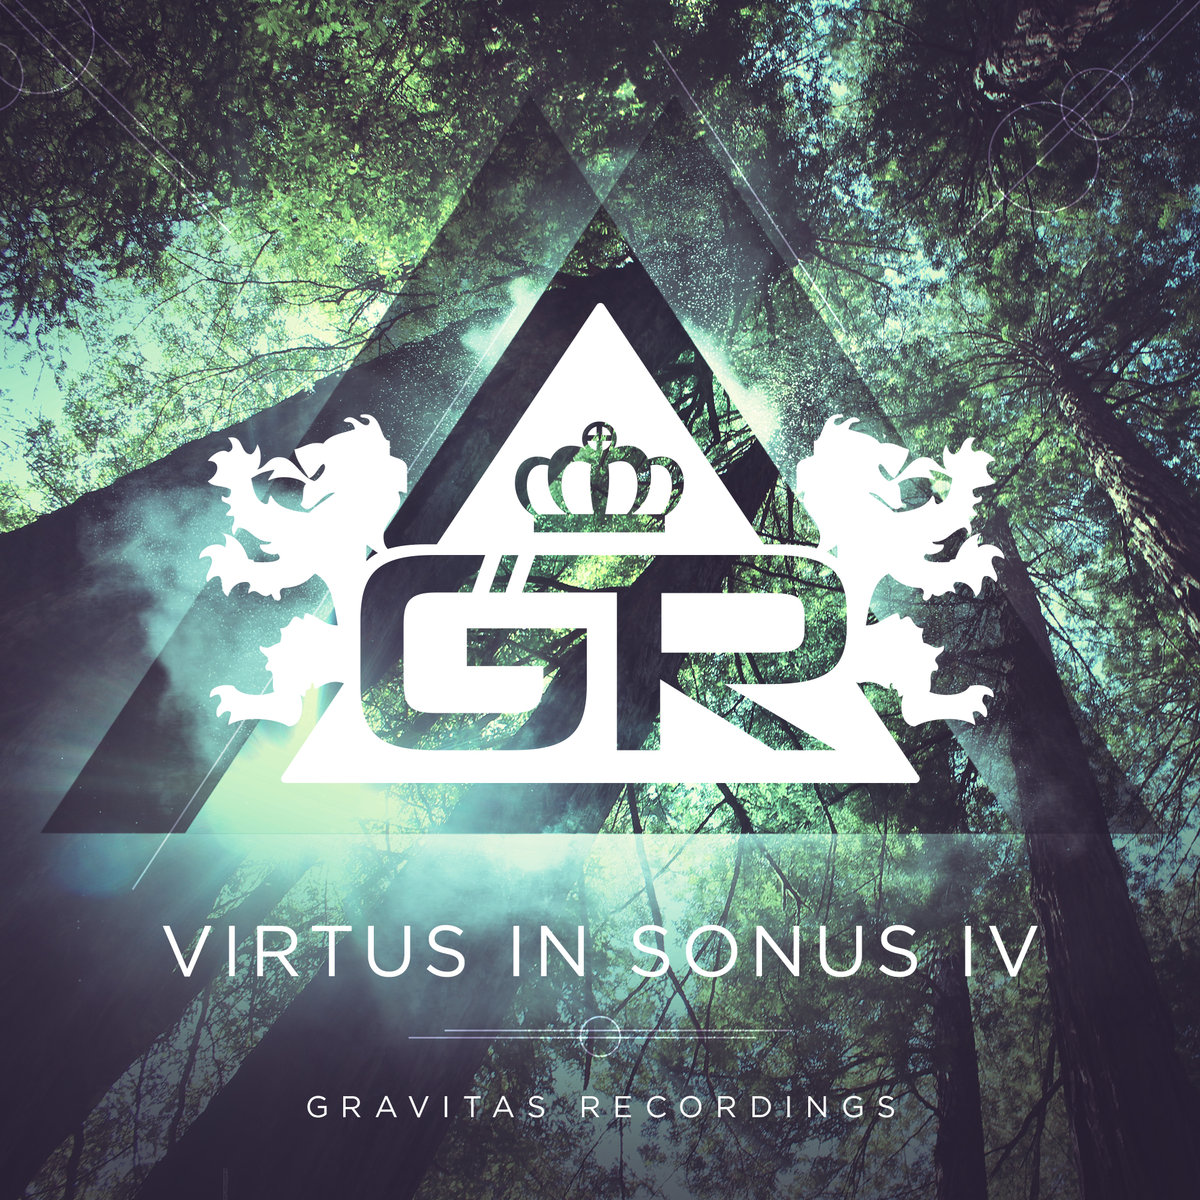 Of The Trees - Mekanos @ 'Virtus In Sonus IV' album (Austin)